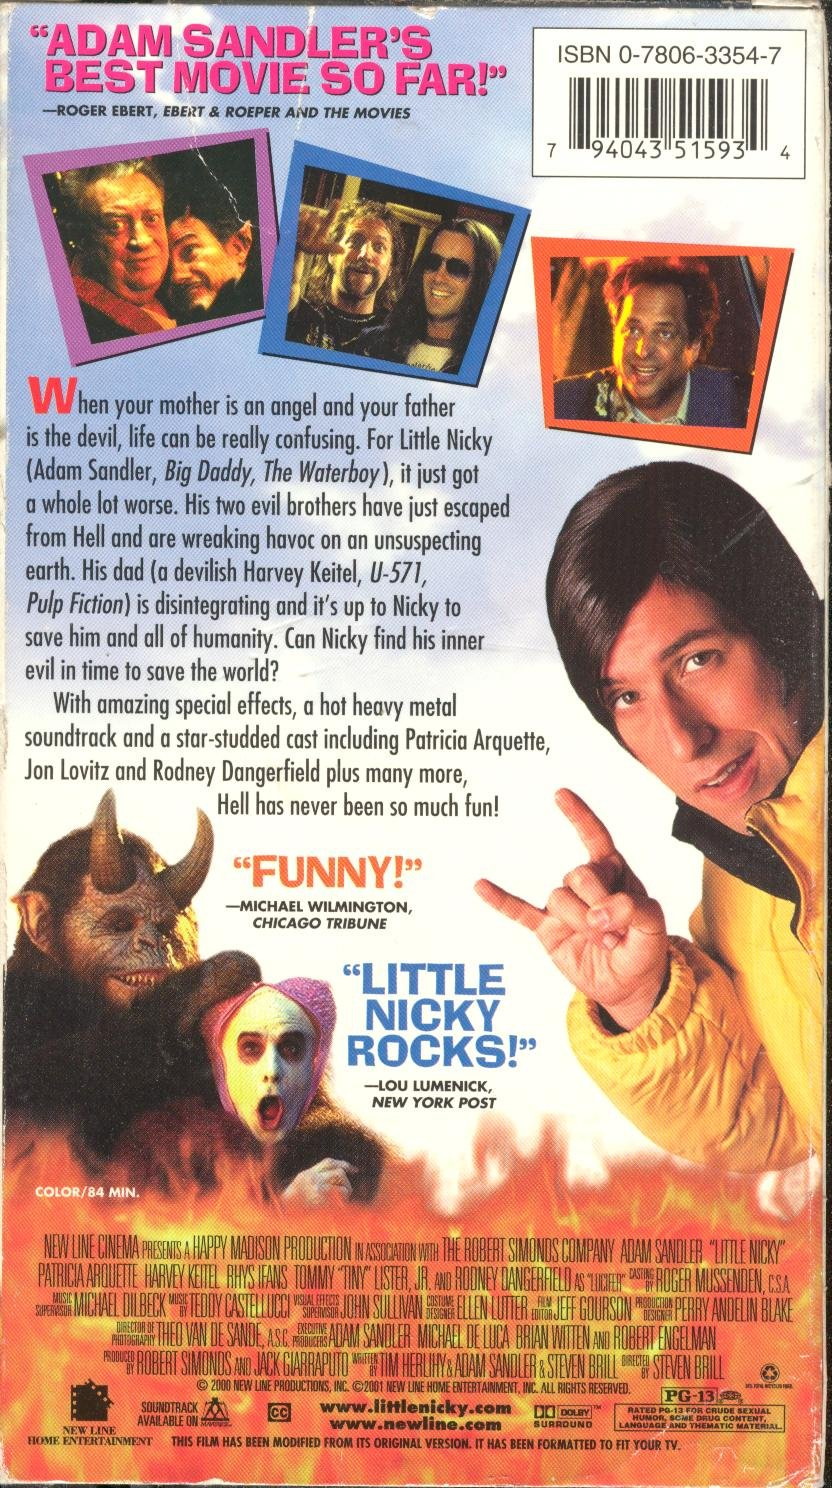 Amazon.com: Little Nicky [VHS]: Adam Sandler, Patricia Arquette, Harvey  Keitel, Rhys Ifans, Tommy 'Tiny' Lister, Rodney Dangerfield, Allen Covert,  ...